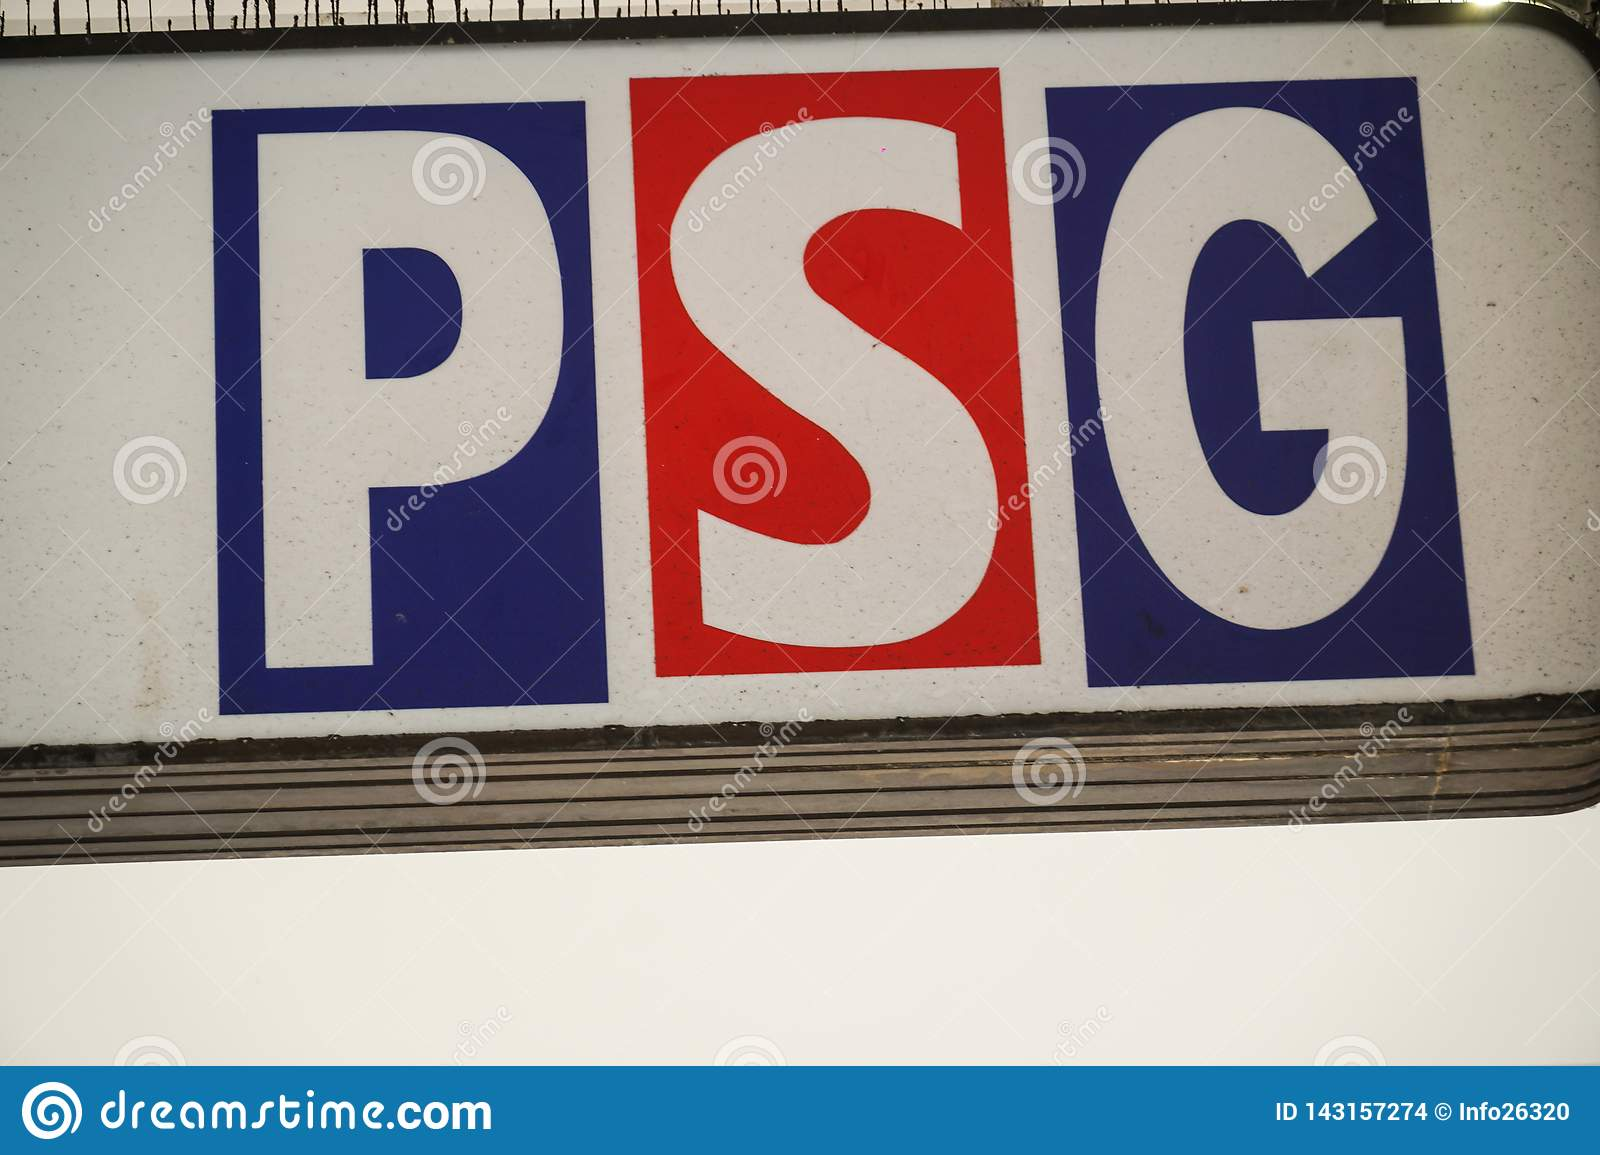 Historical Crest Of The Paris Saint Germain Football Club Editorial Stock Image Image Of Model Graphic 143157274